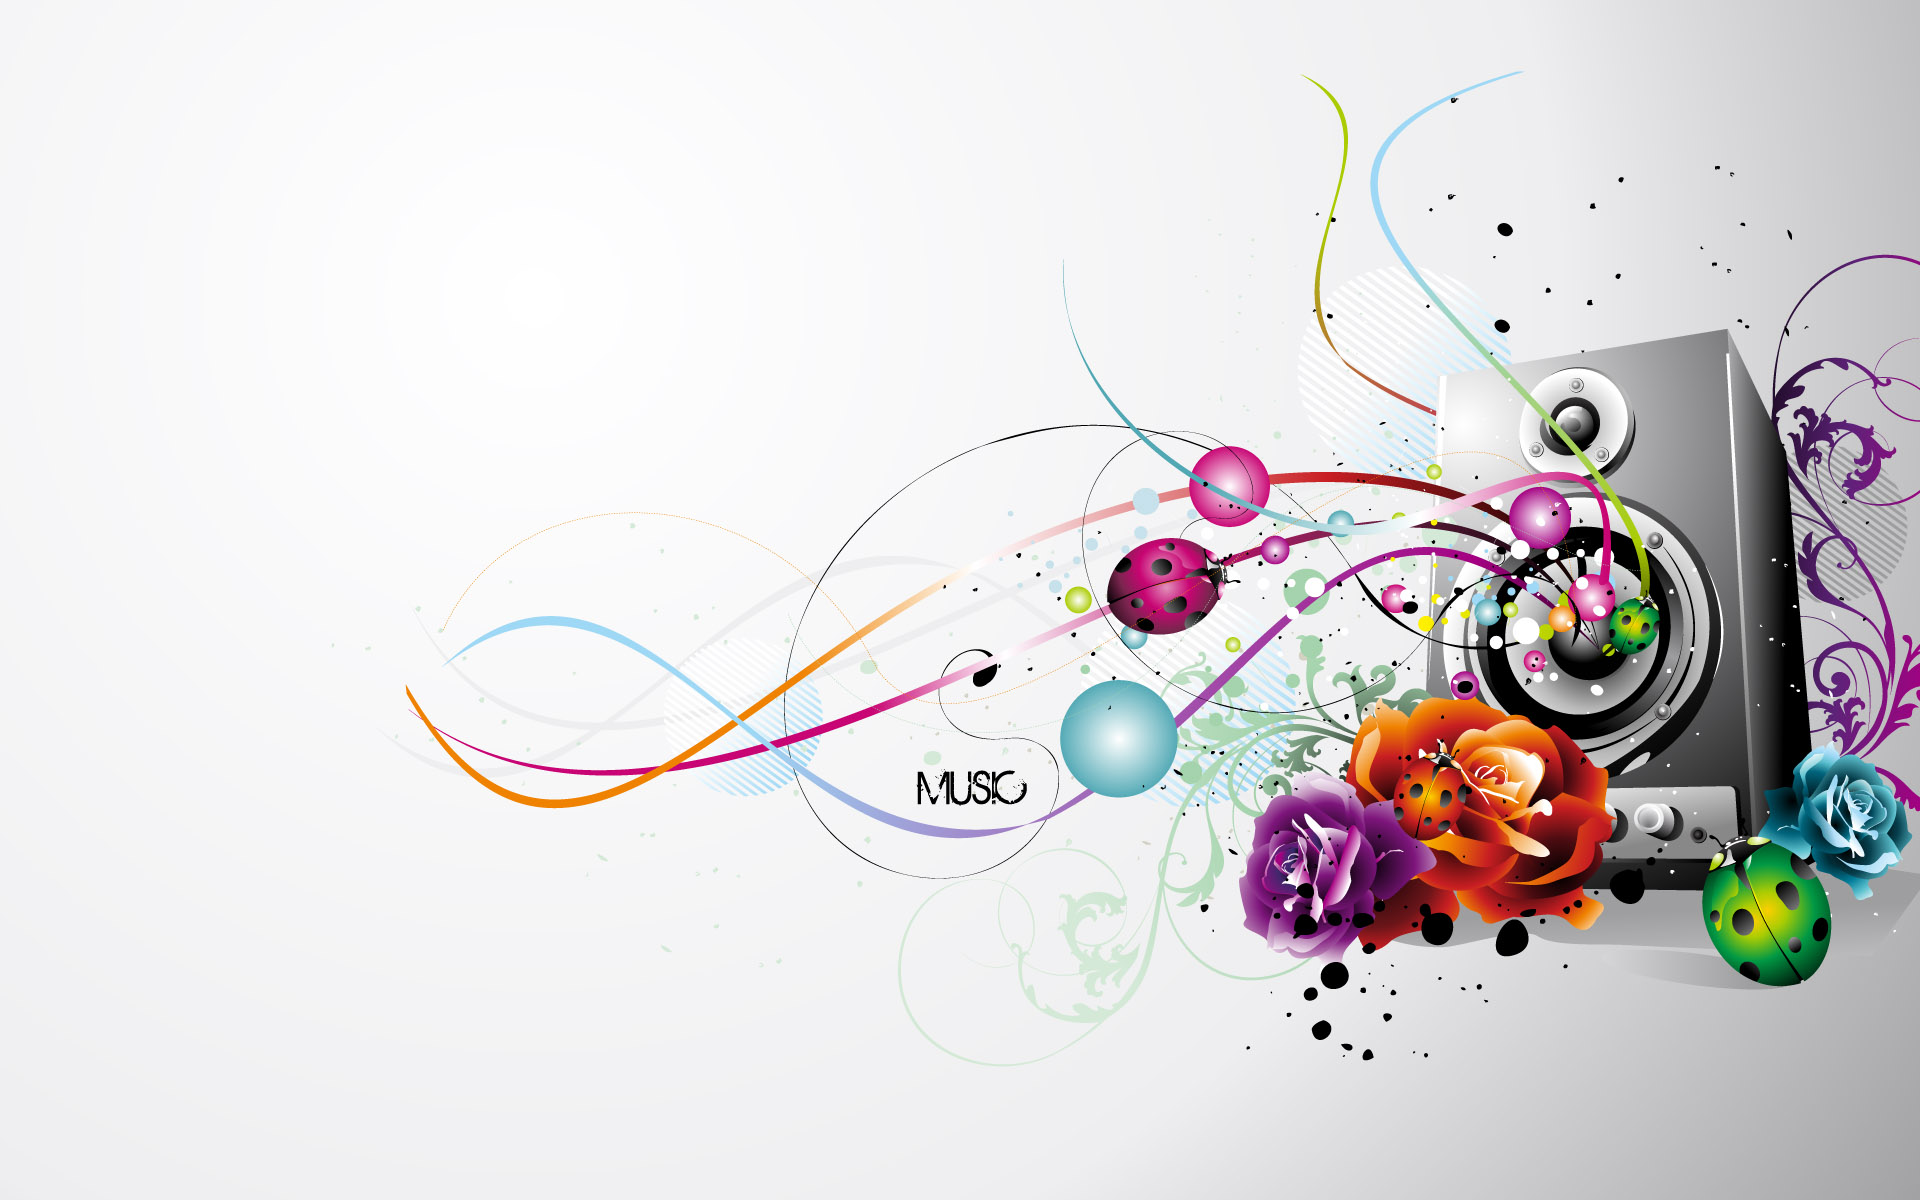 Music Abstract Wallpaper   Wallpaper High Definition High Quality 1920x1200